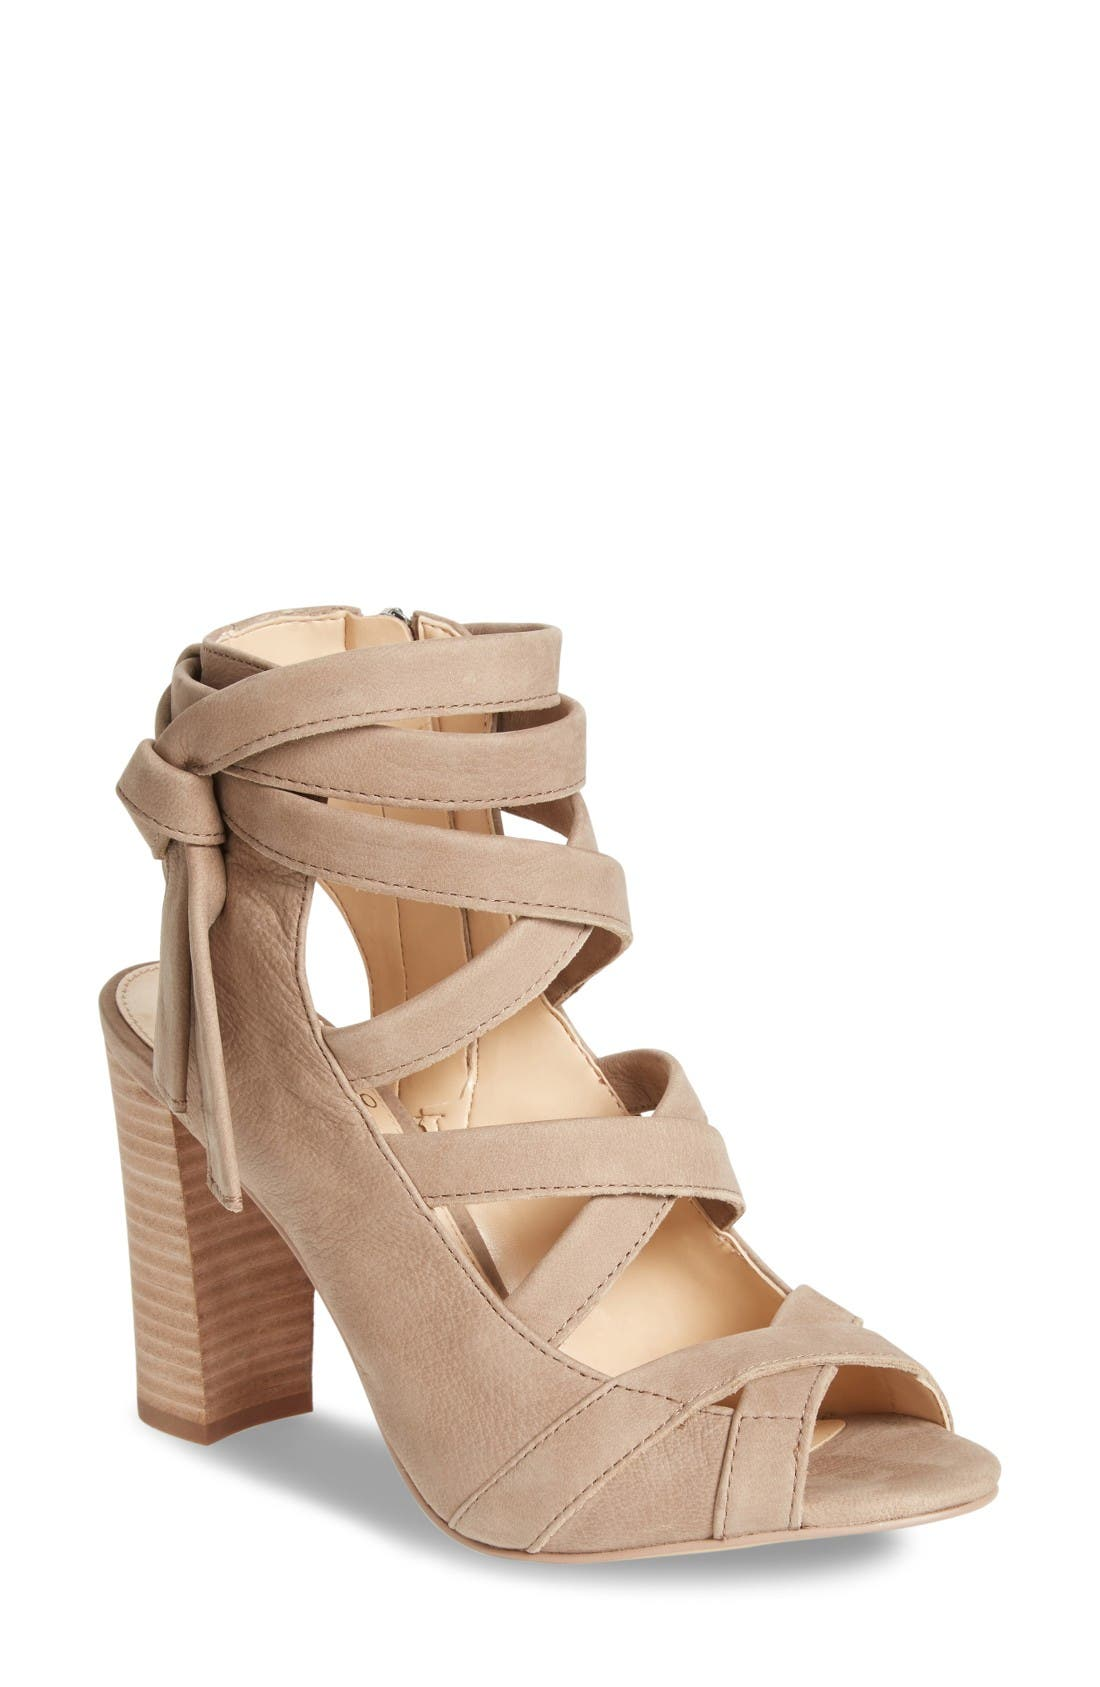 Alternate Image 1 Selected - Vince Camuto Sammson Sandal (Women)